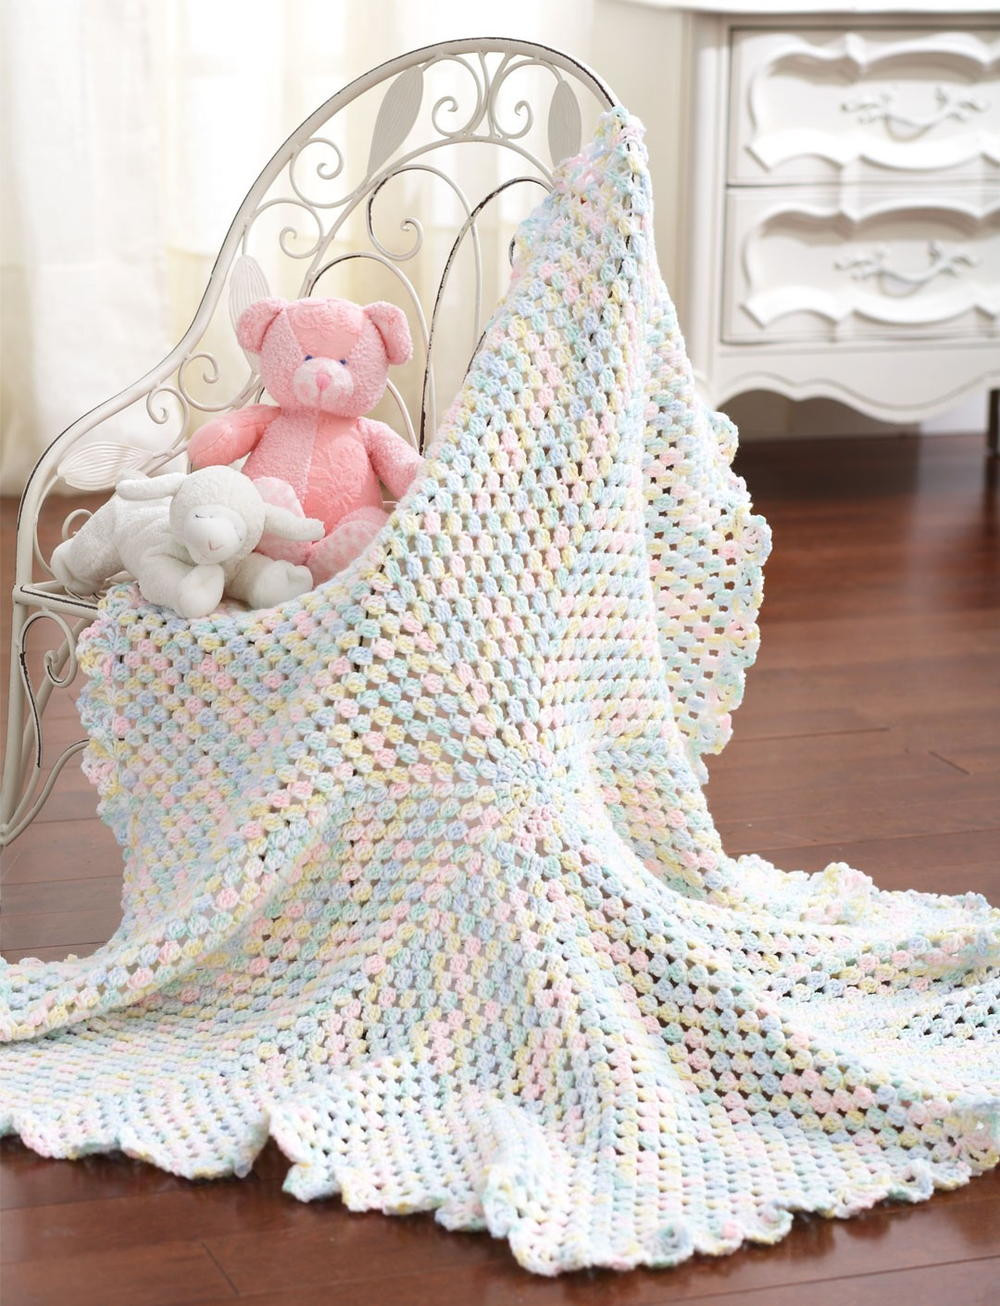 Baby Afghan Patterns Awesome Marshmallow Baby Blanket Of Amazing 46 Ideas Baby Afghan Patterns